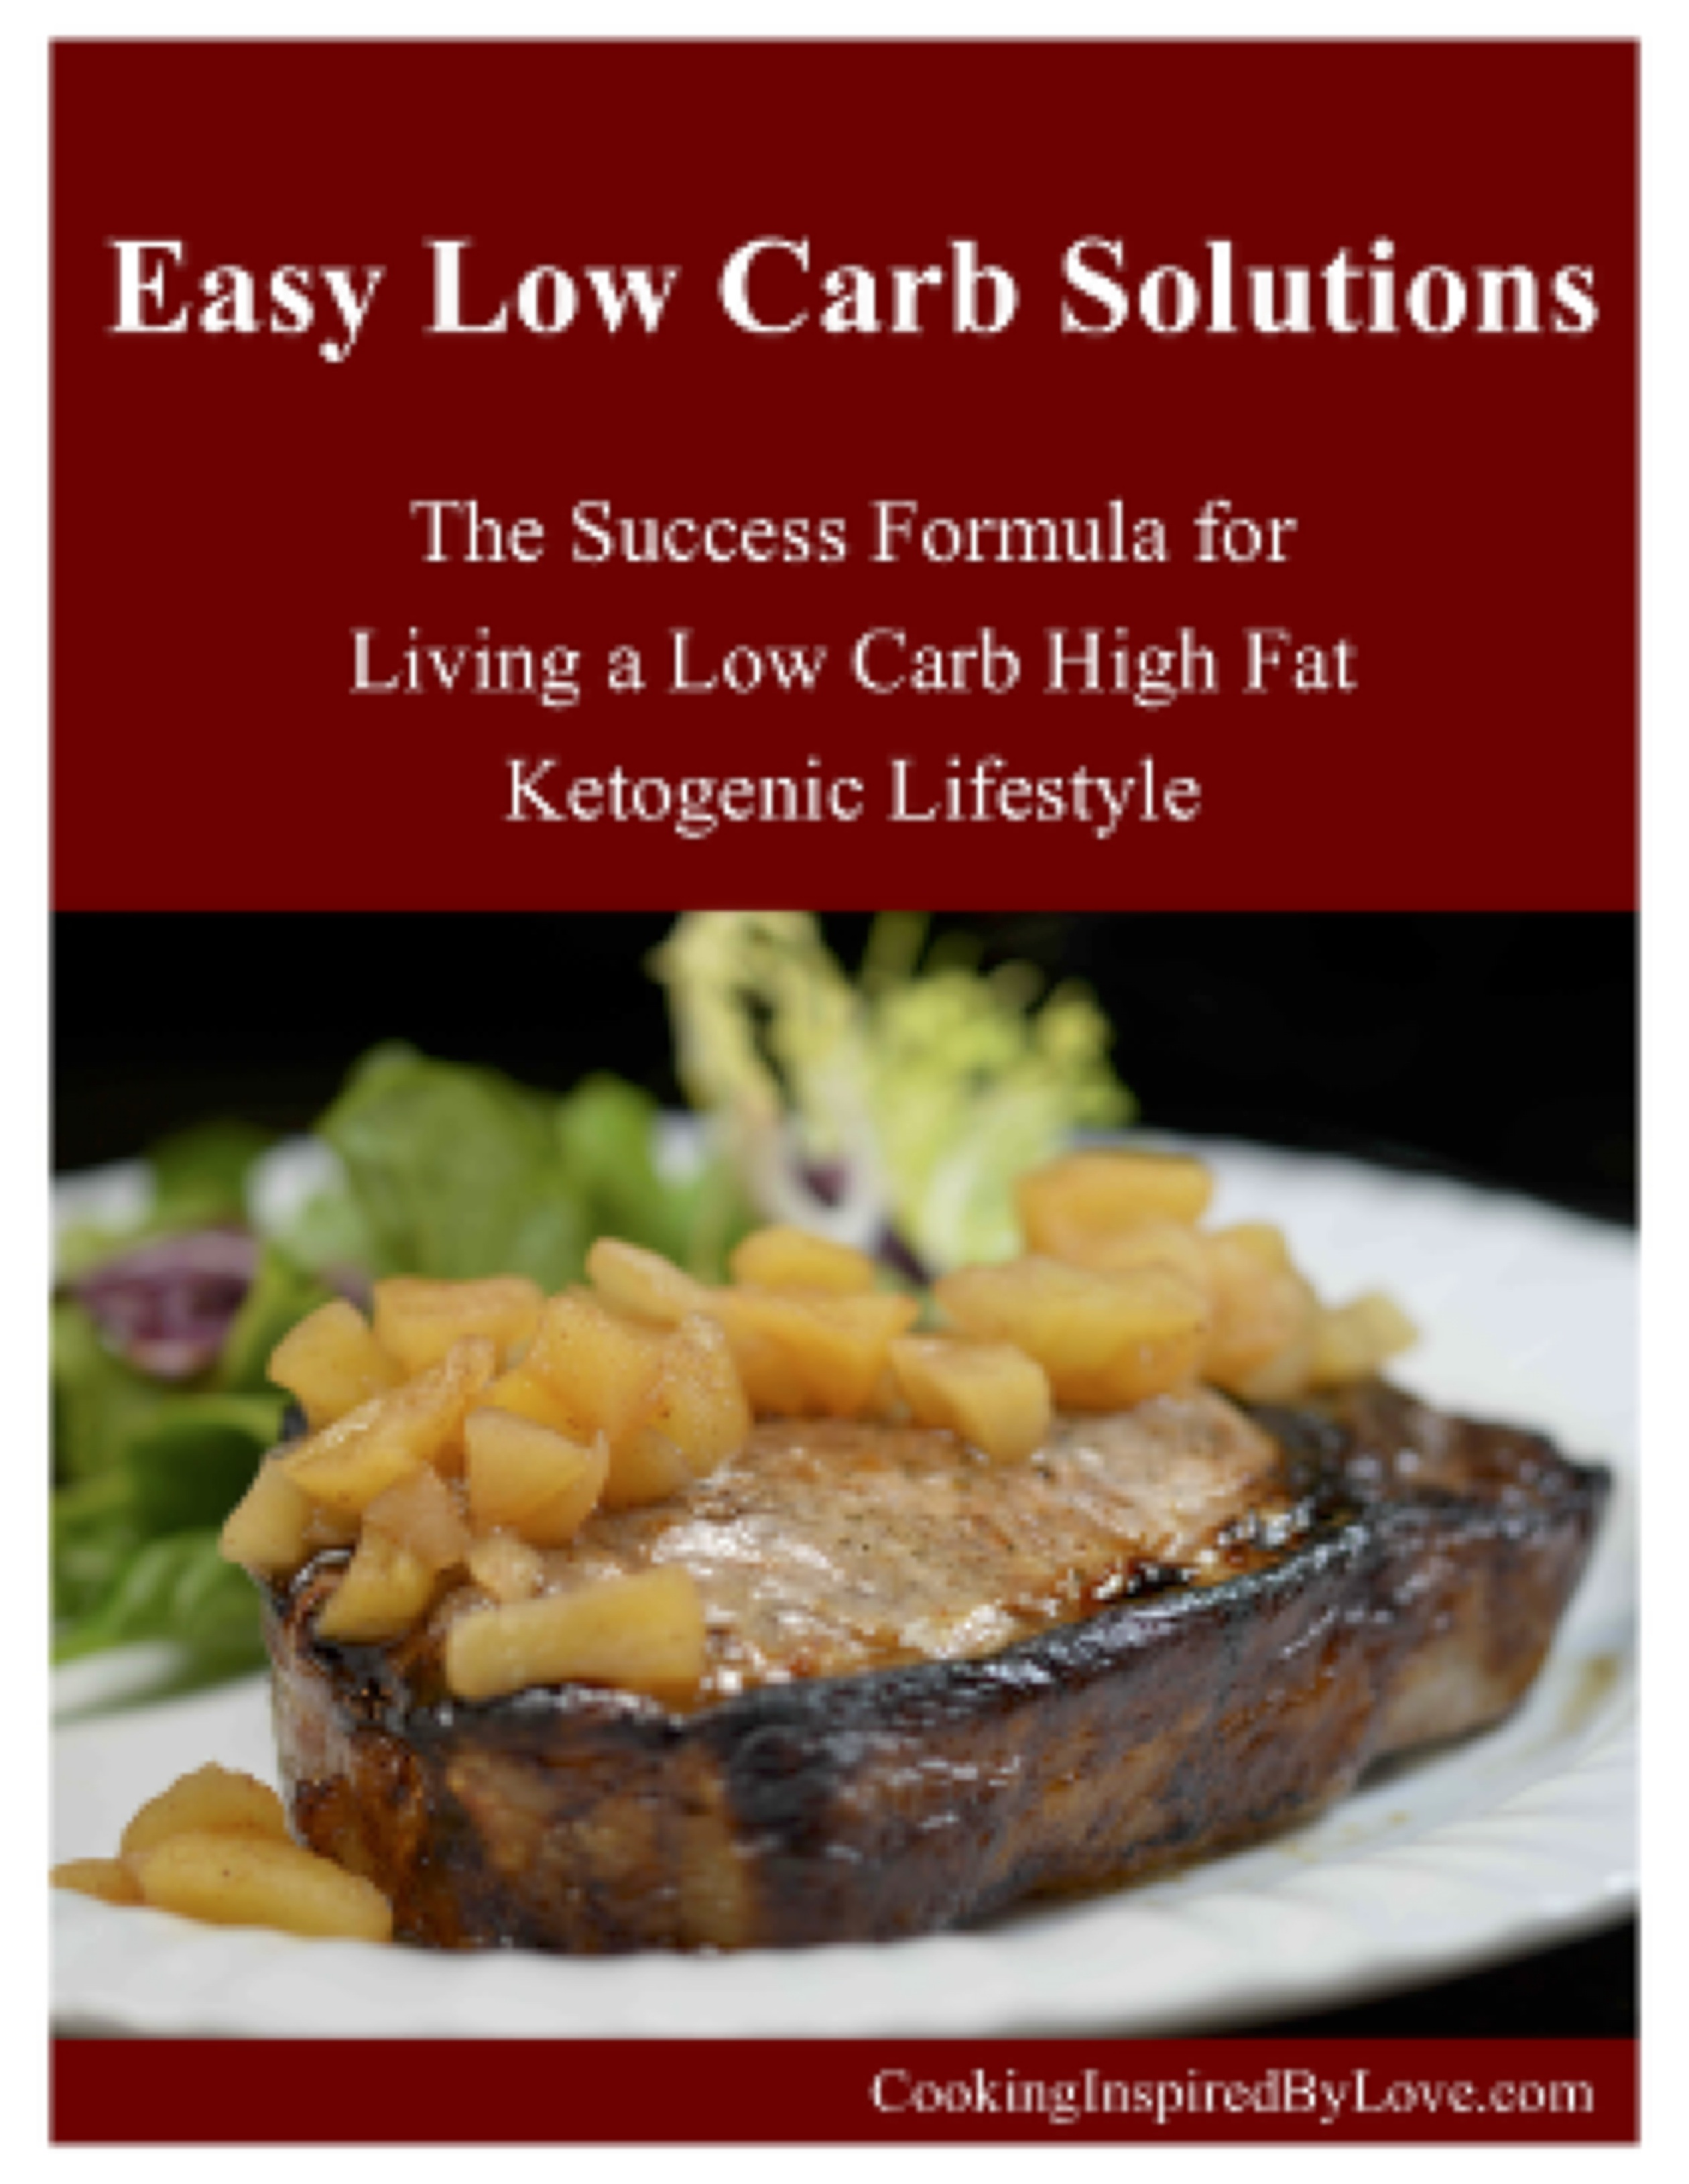 Easy low carb solutions rev3-cover280x362